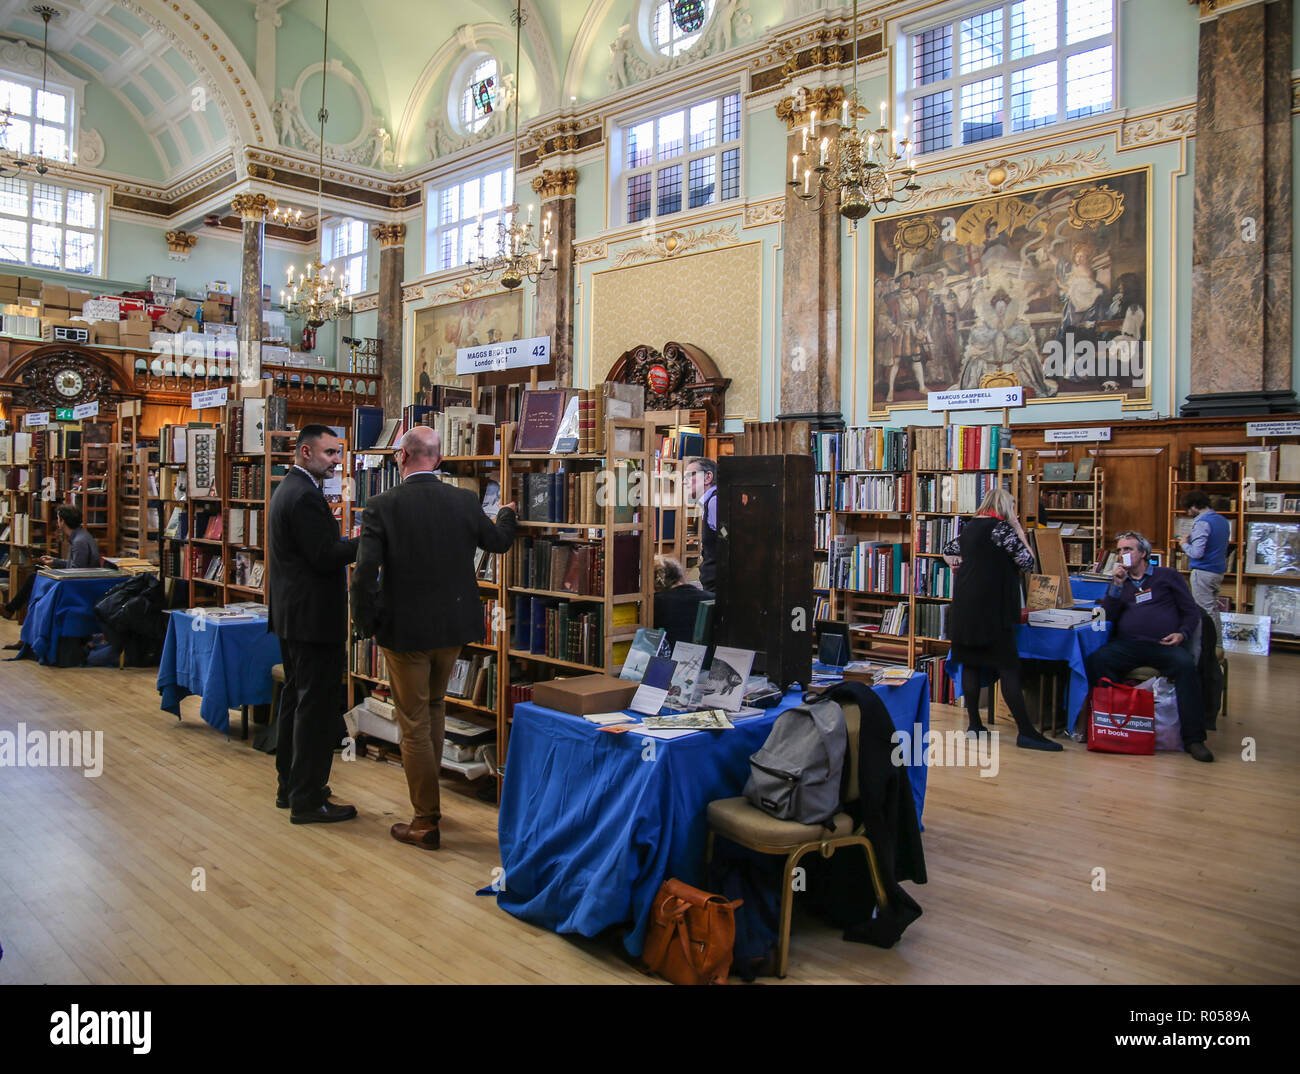 London UK 02 November 2018 The ABA (Antiquarian Book Association) Chelsea Rare Book Fair at the  Chelsea Old Town Hall for the 28th edition With more than 80 exhibitors specializing in all type of books, manuscripts, maps, prints, and ephemera, with some fantastic offers @Paul Quezada-Neiman/Alamy Live News Stock Photo